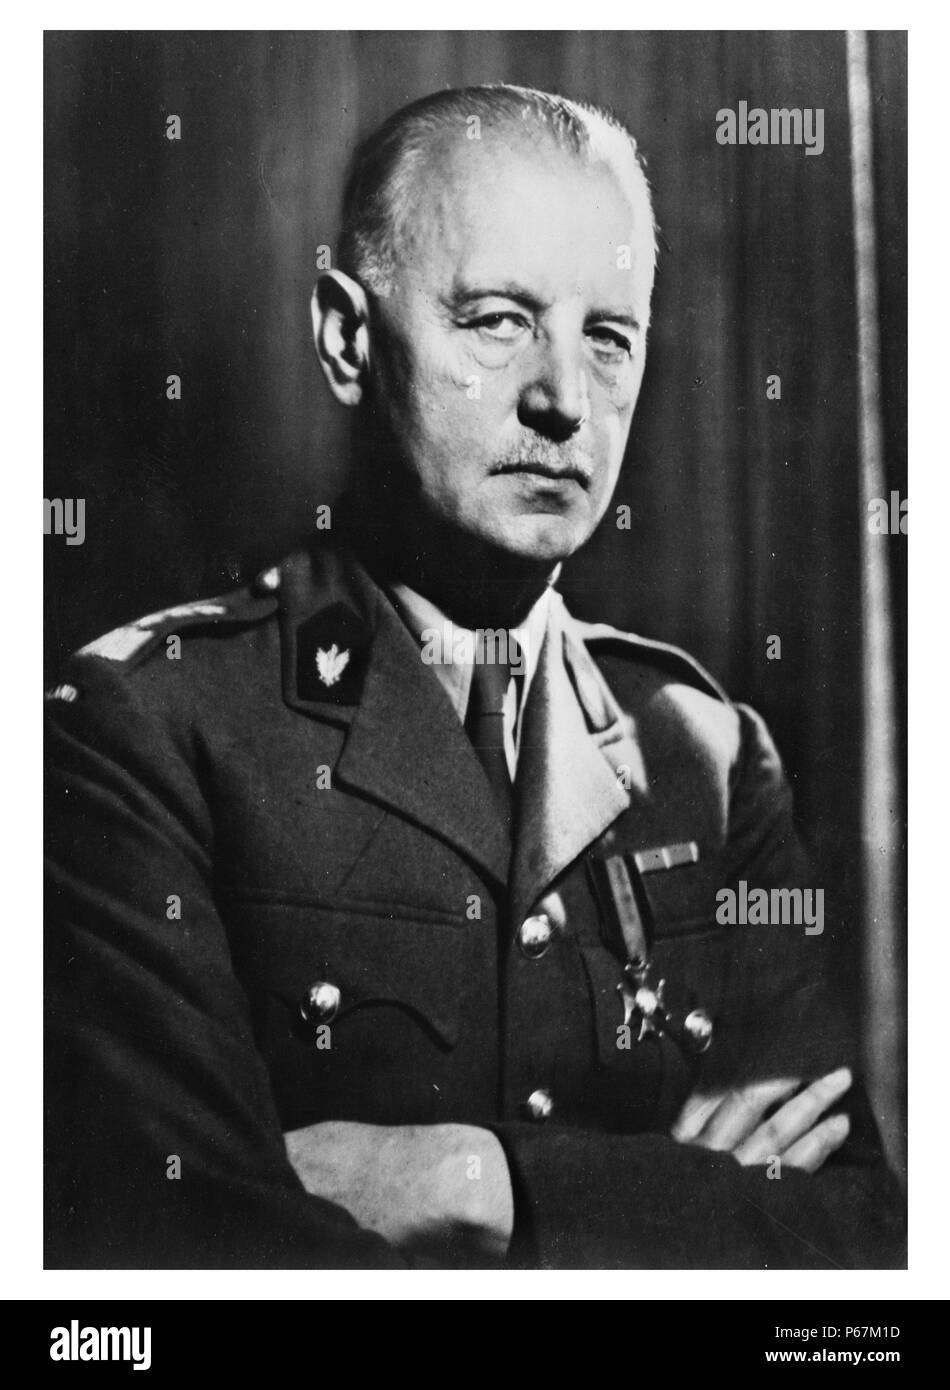 Photograph of Wladyslaw Sikorski (1881-1943)  Polish military and political leader. Dated 1939 - Stock Image